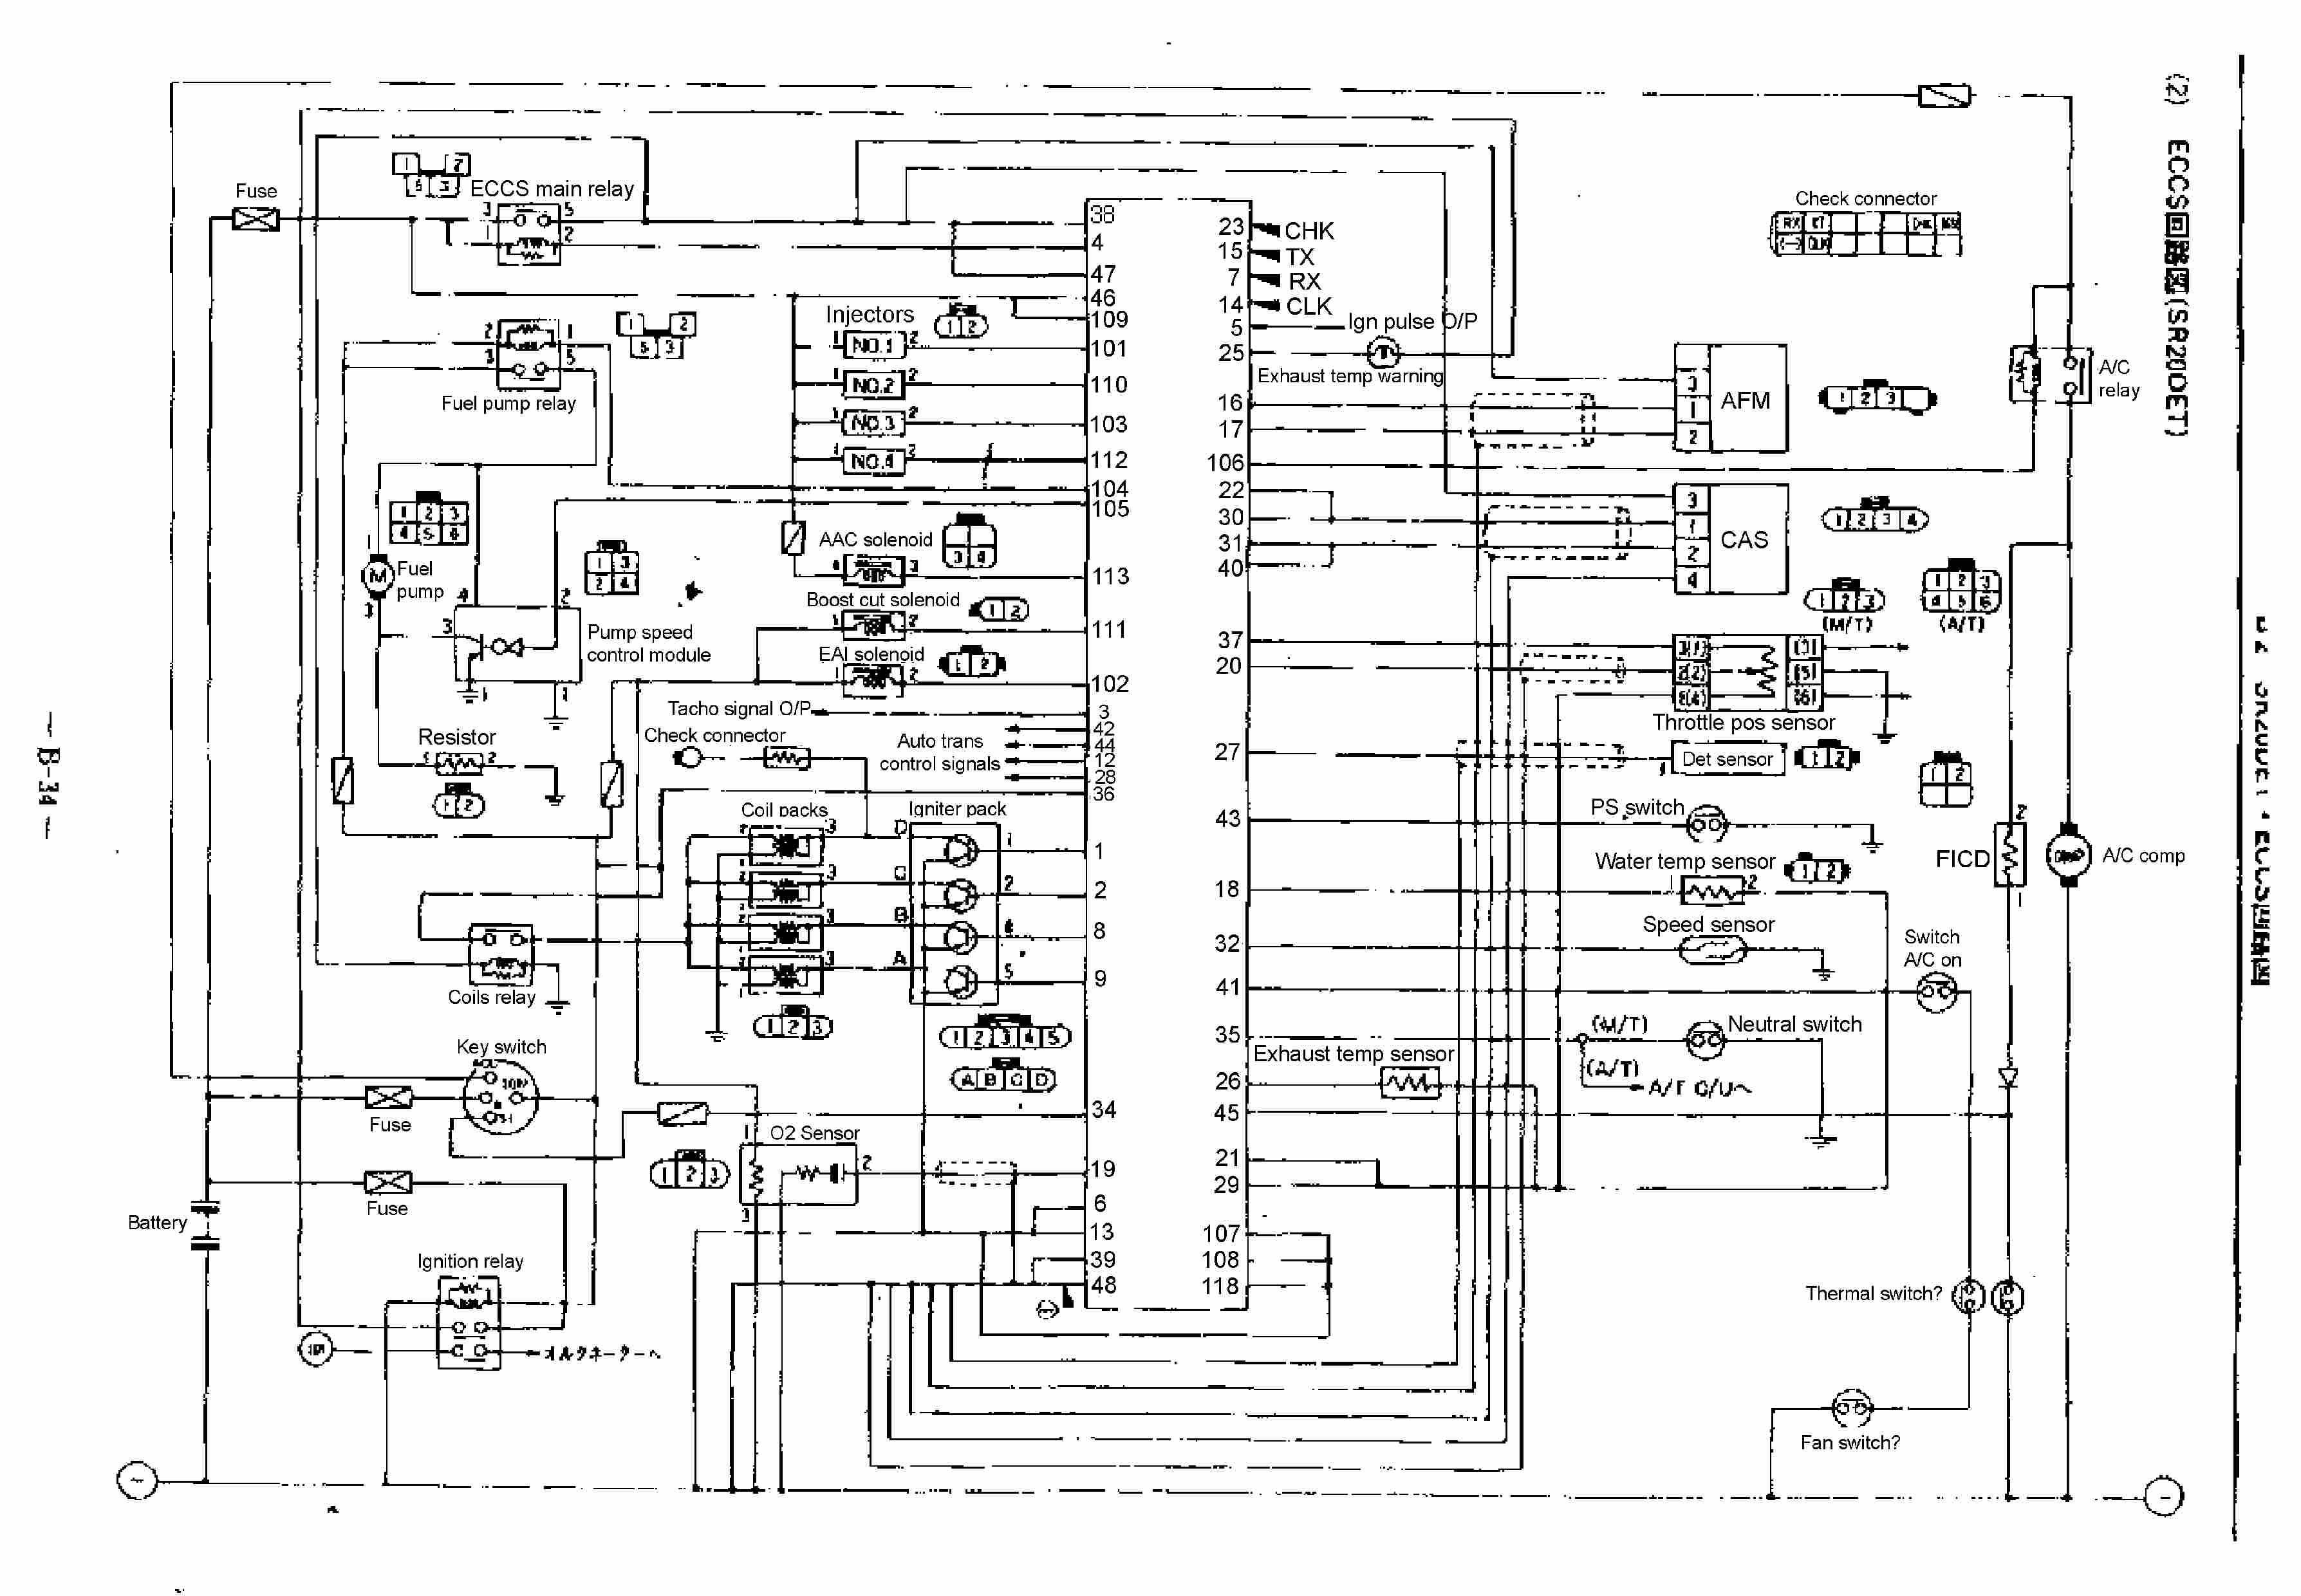 electric heater wiring diagrams bfaf collins school bus wiring diagram wiring resources electric baseboard heater wiring diagram thermostat bfaf collins school bus wiring diagram